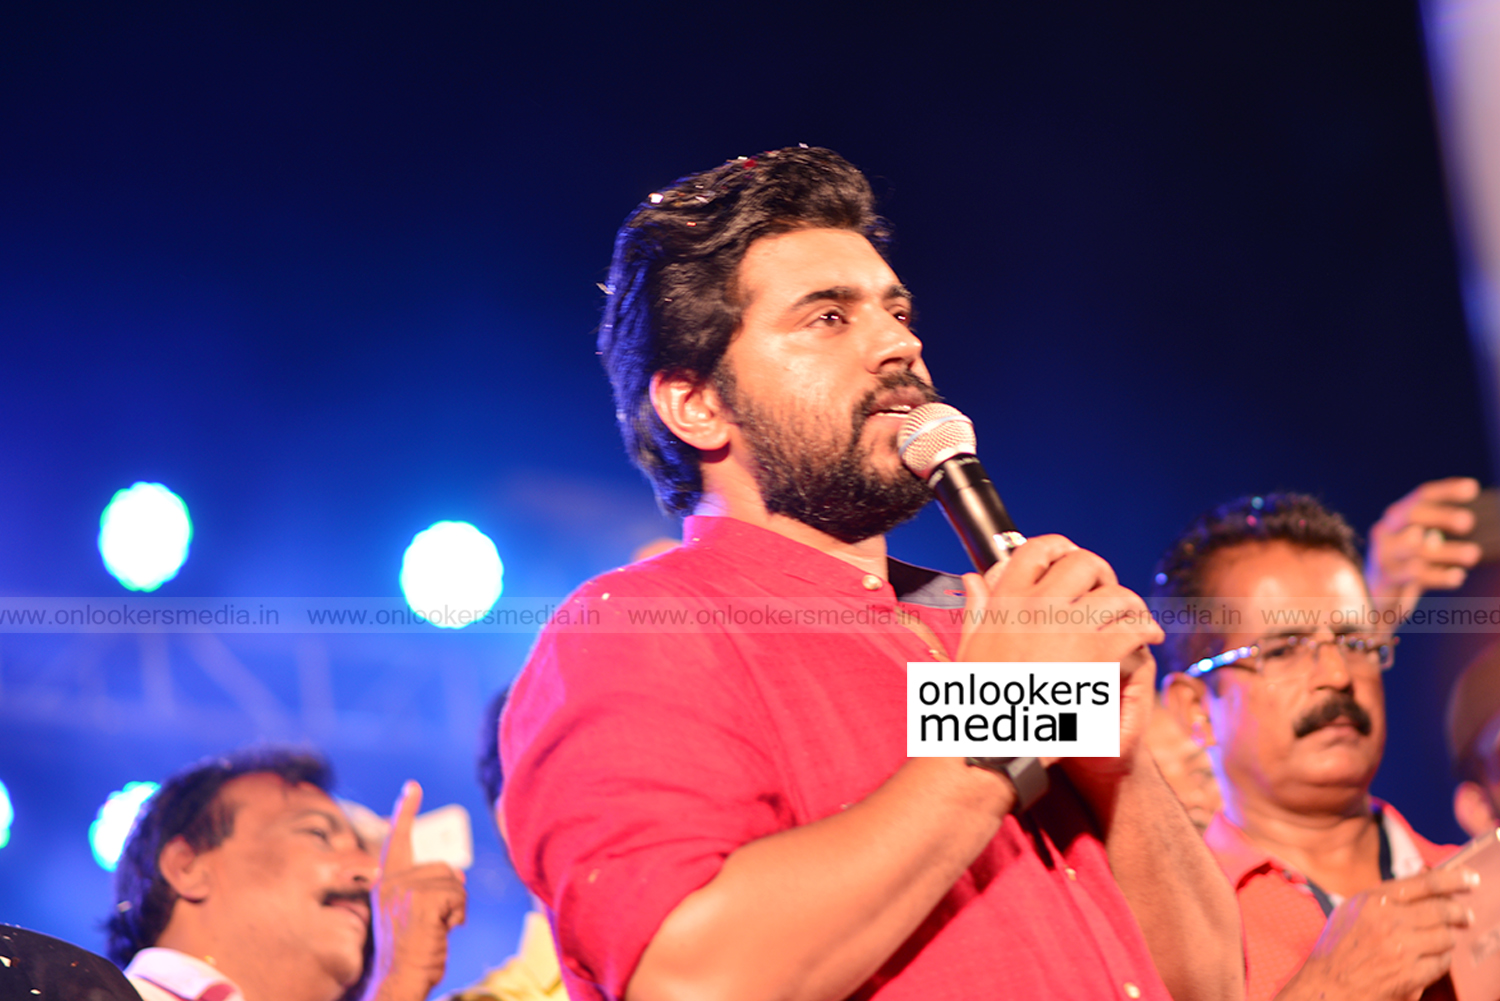 http://onlookersmedia.in/wp-content/uploads/2017/04/Sakhavu-Audio-Launch-Stills-Photos-1.jpg